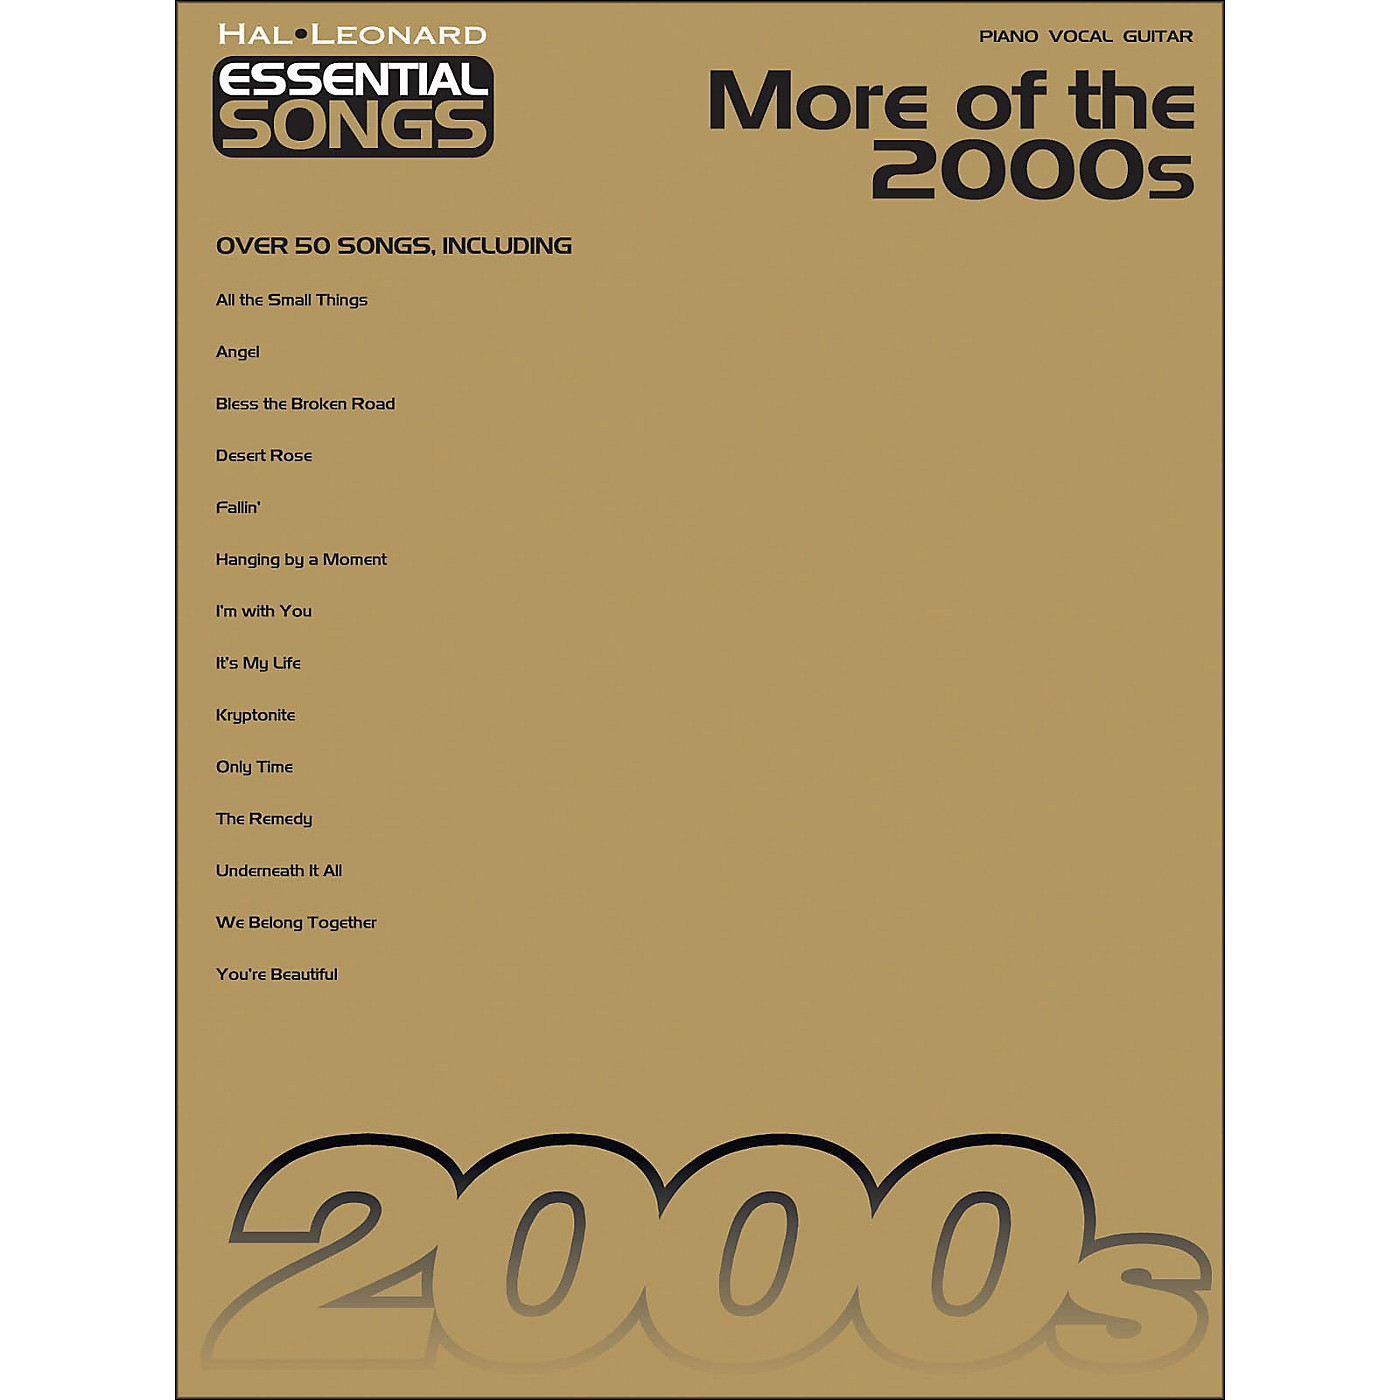 Hal Leonard More Of The 2000s - Essential Songs arranged for piano, vocal, and guitar (P/V/G) thumbnail